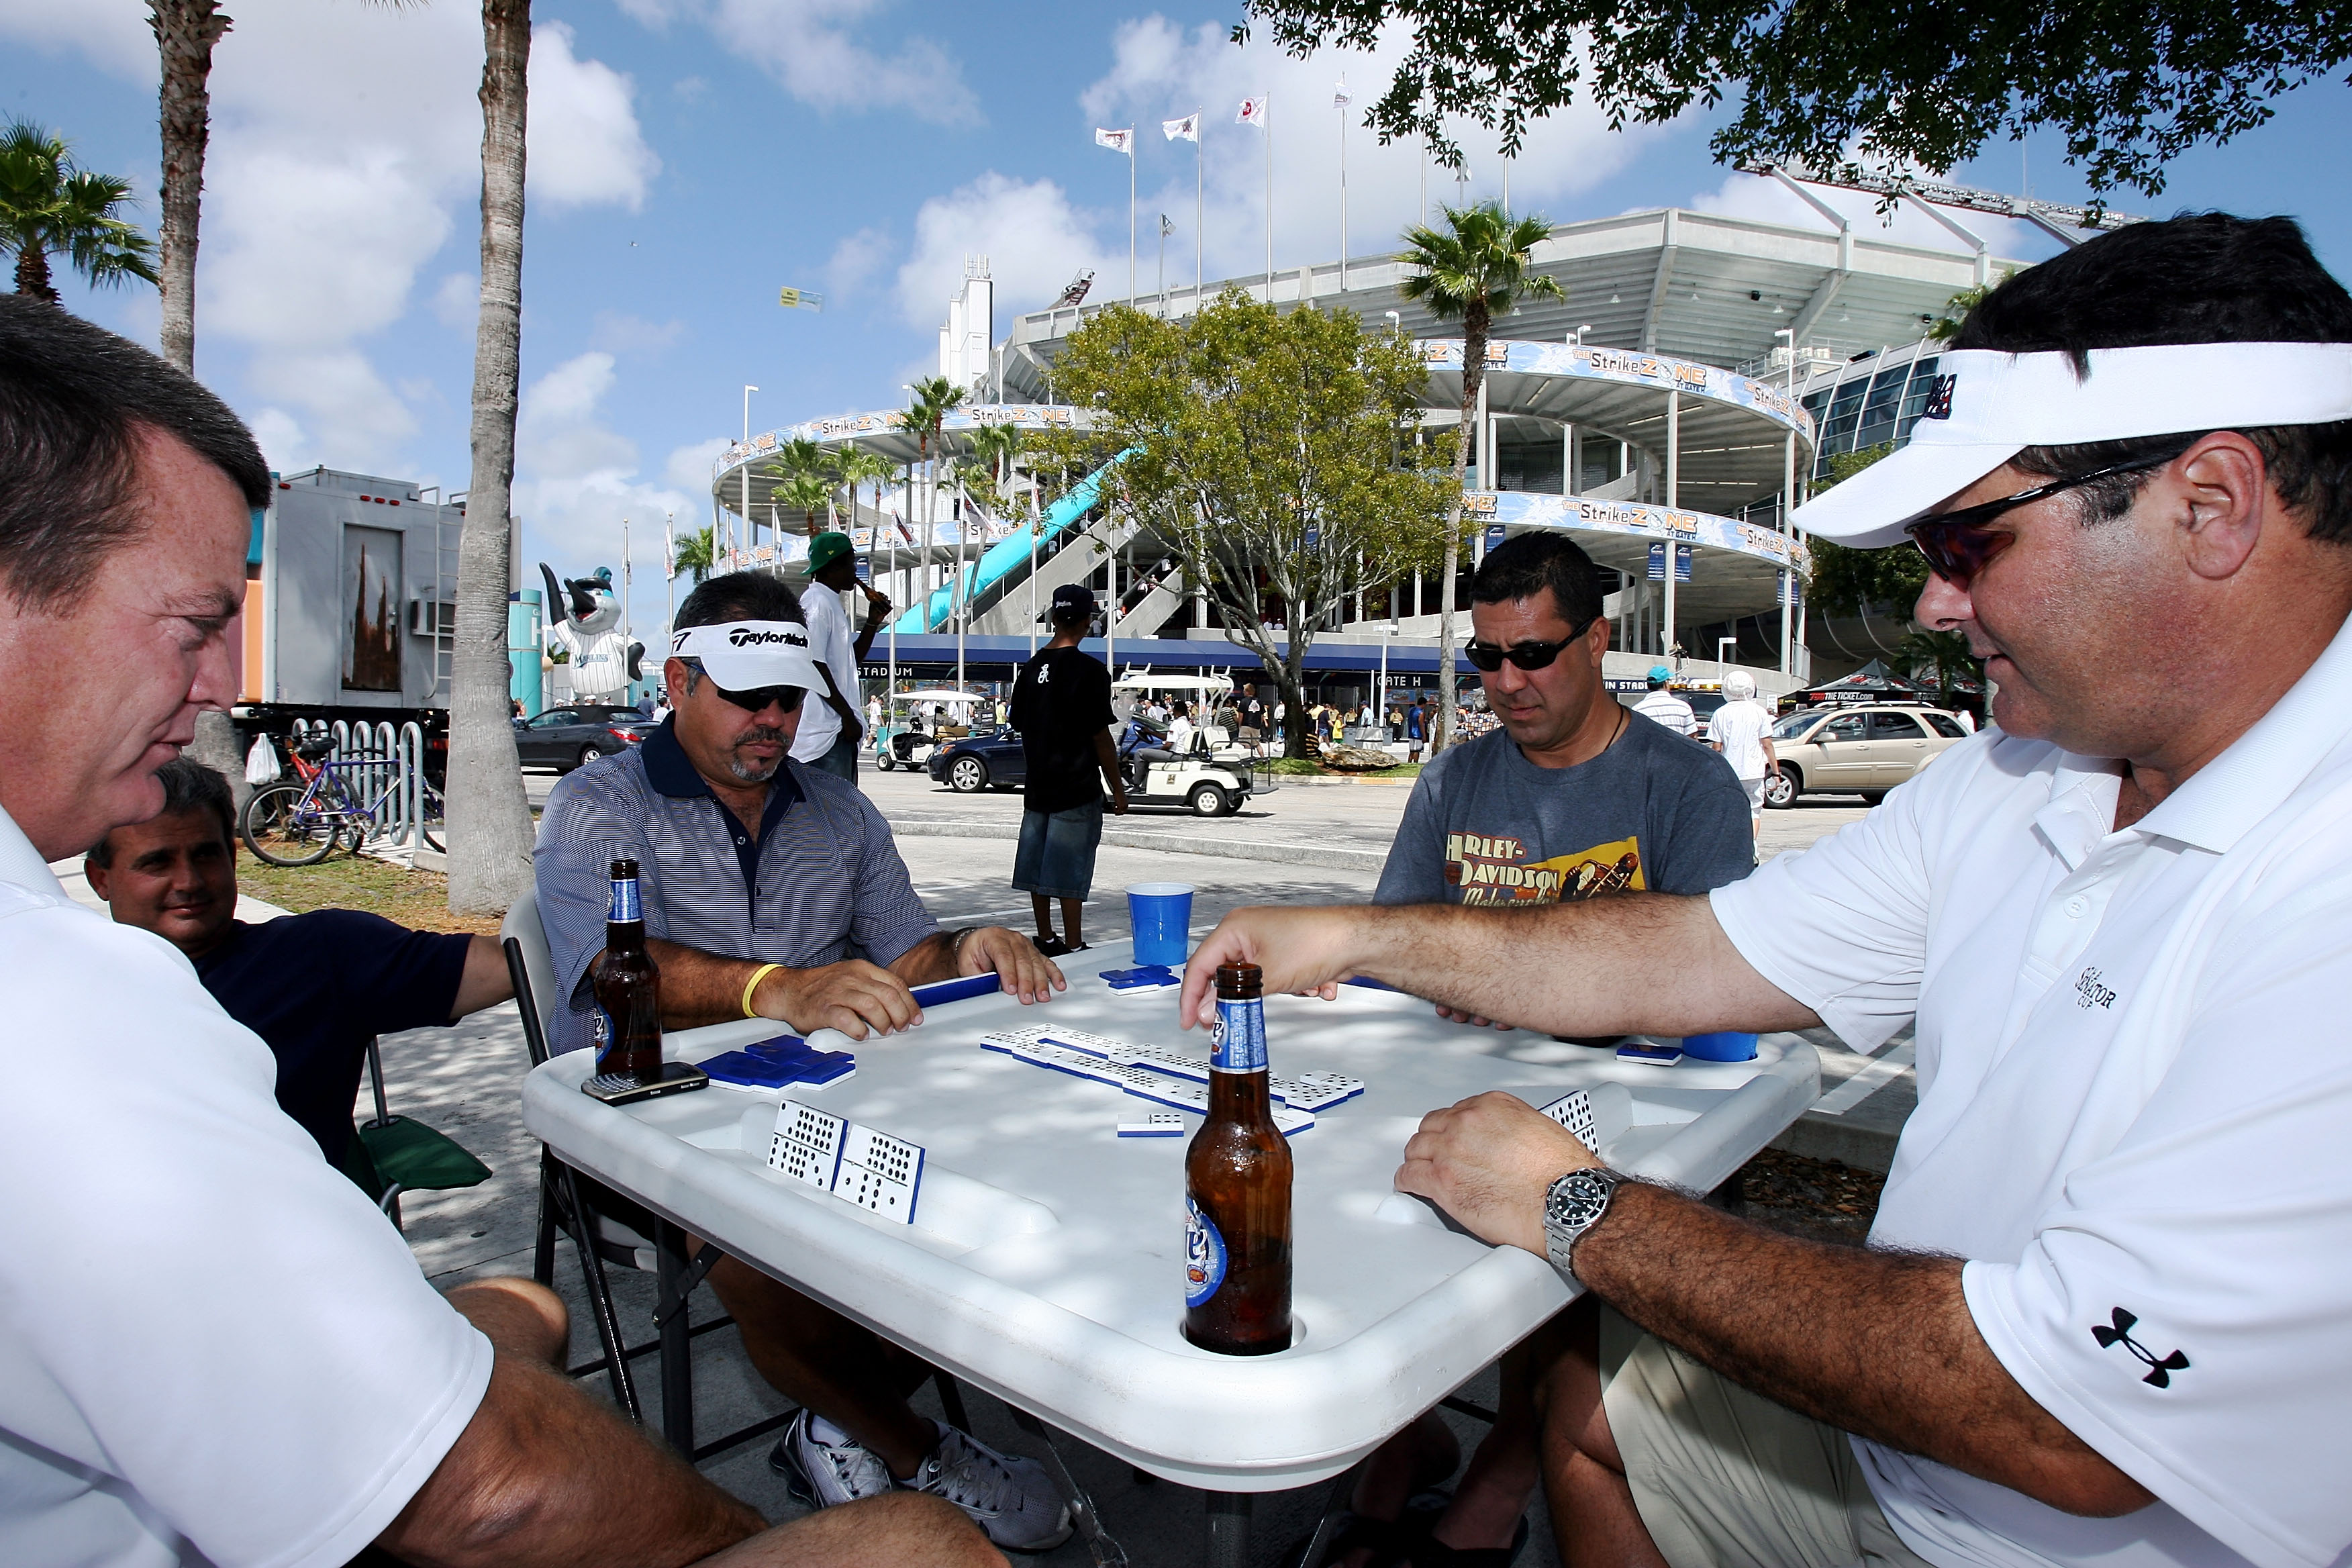 MIAMI - MARCH 31:  Some fans wait for the gate to open by playing dominos prior to the Florida Marlins game against the New York Mets on Opening Day at Dolphin Stadium on March 31, 2008 in Miami, Florida.  (Photo by Doug Benc/Getty Images)